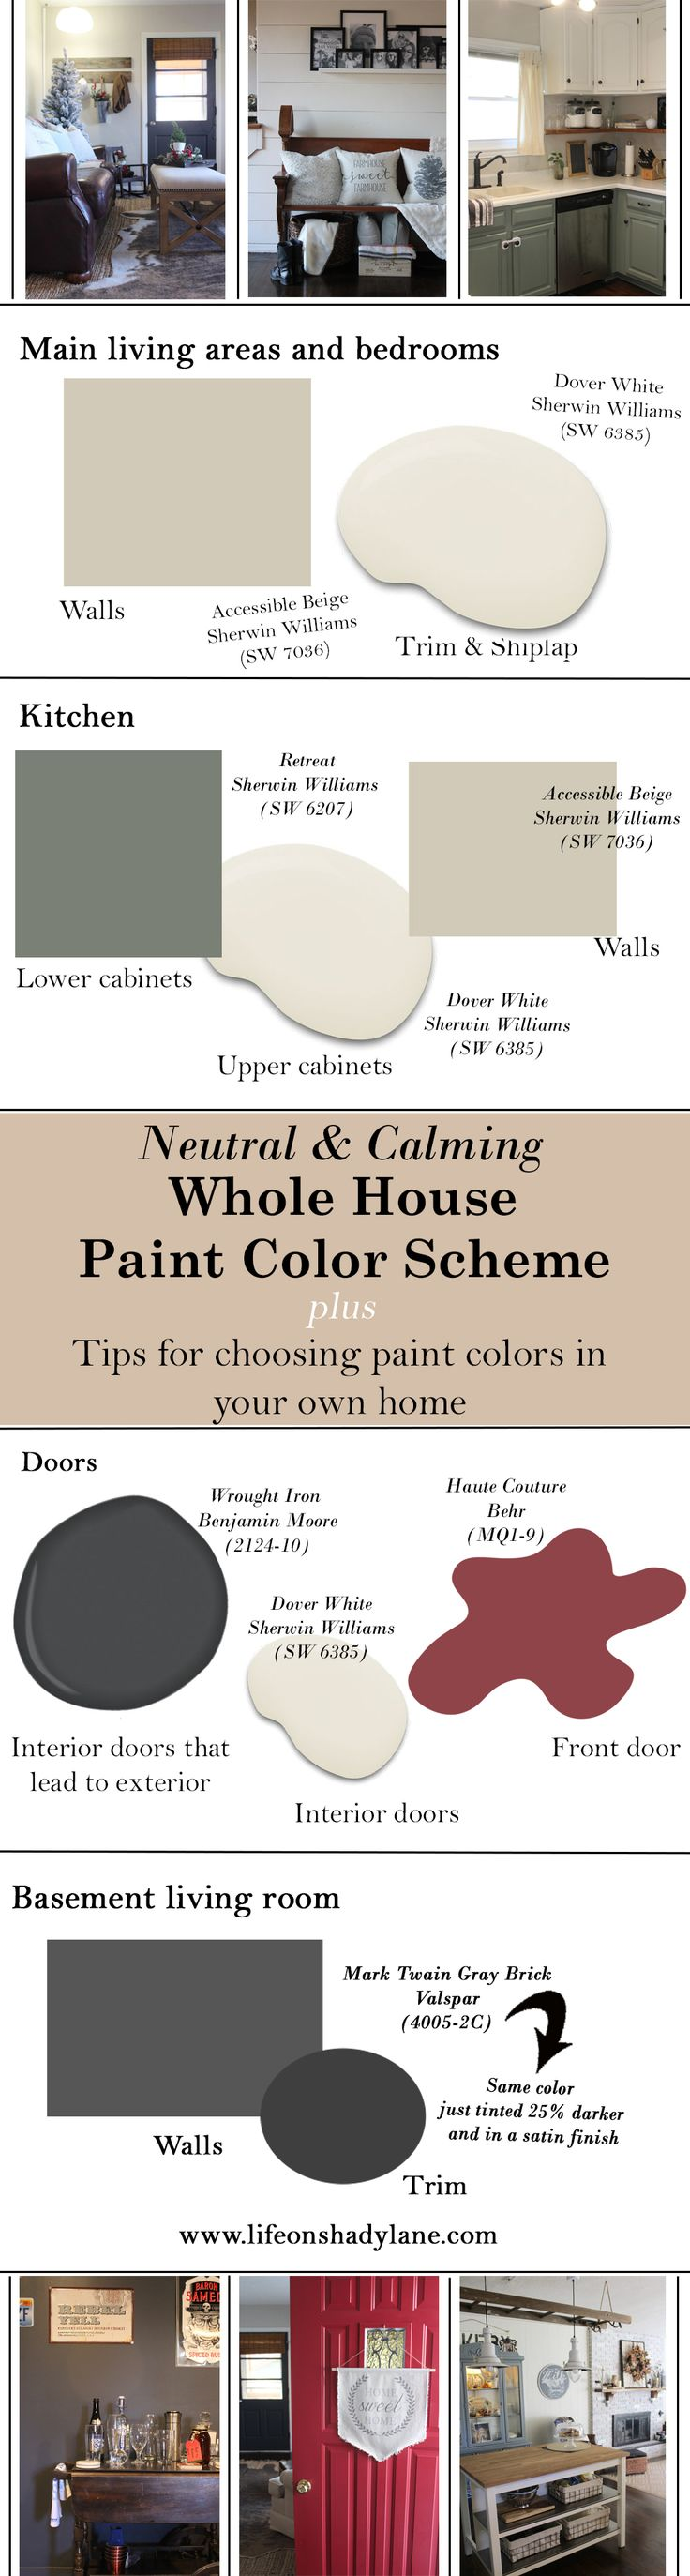 best 25 paint color schemes ideas on pinterest house color schemes interior paint colors and. Black Bedroom Furniture Sets. Home Design Ideas